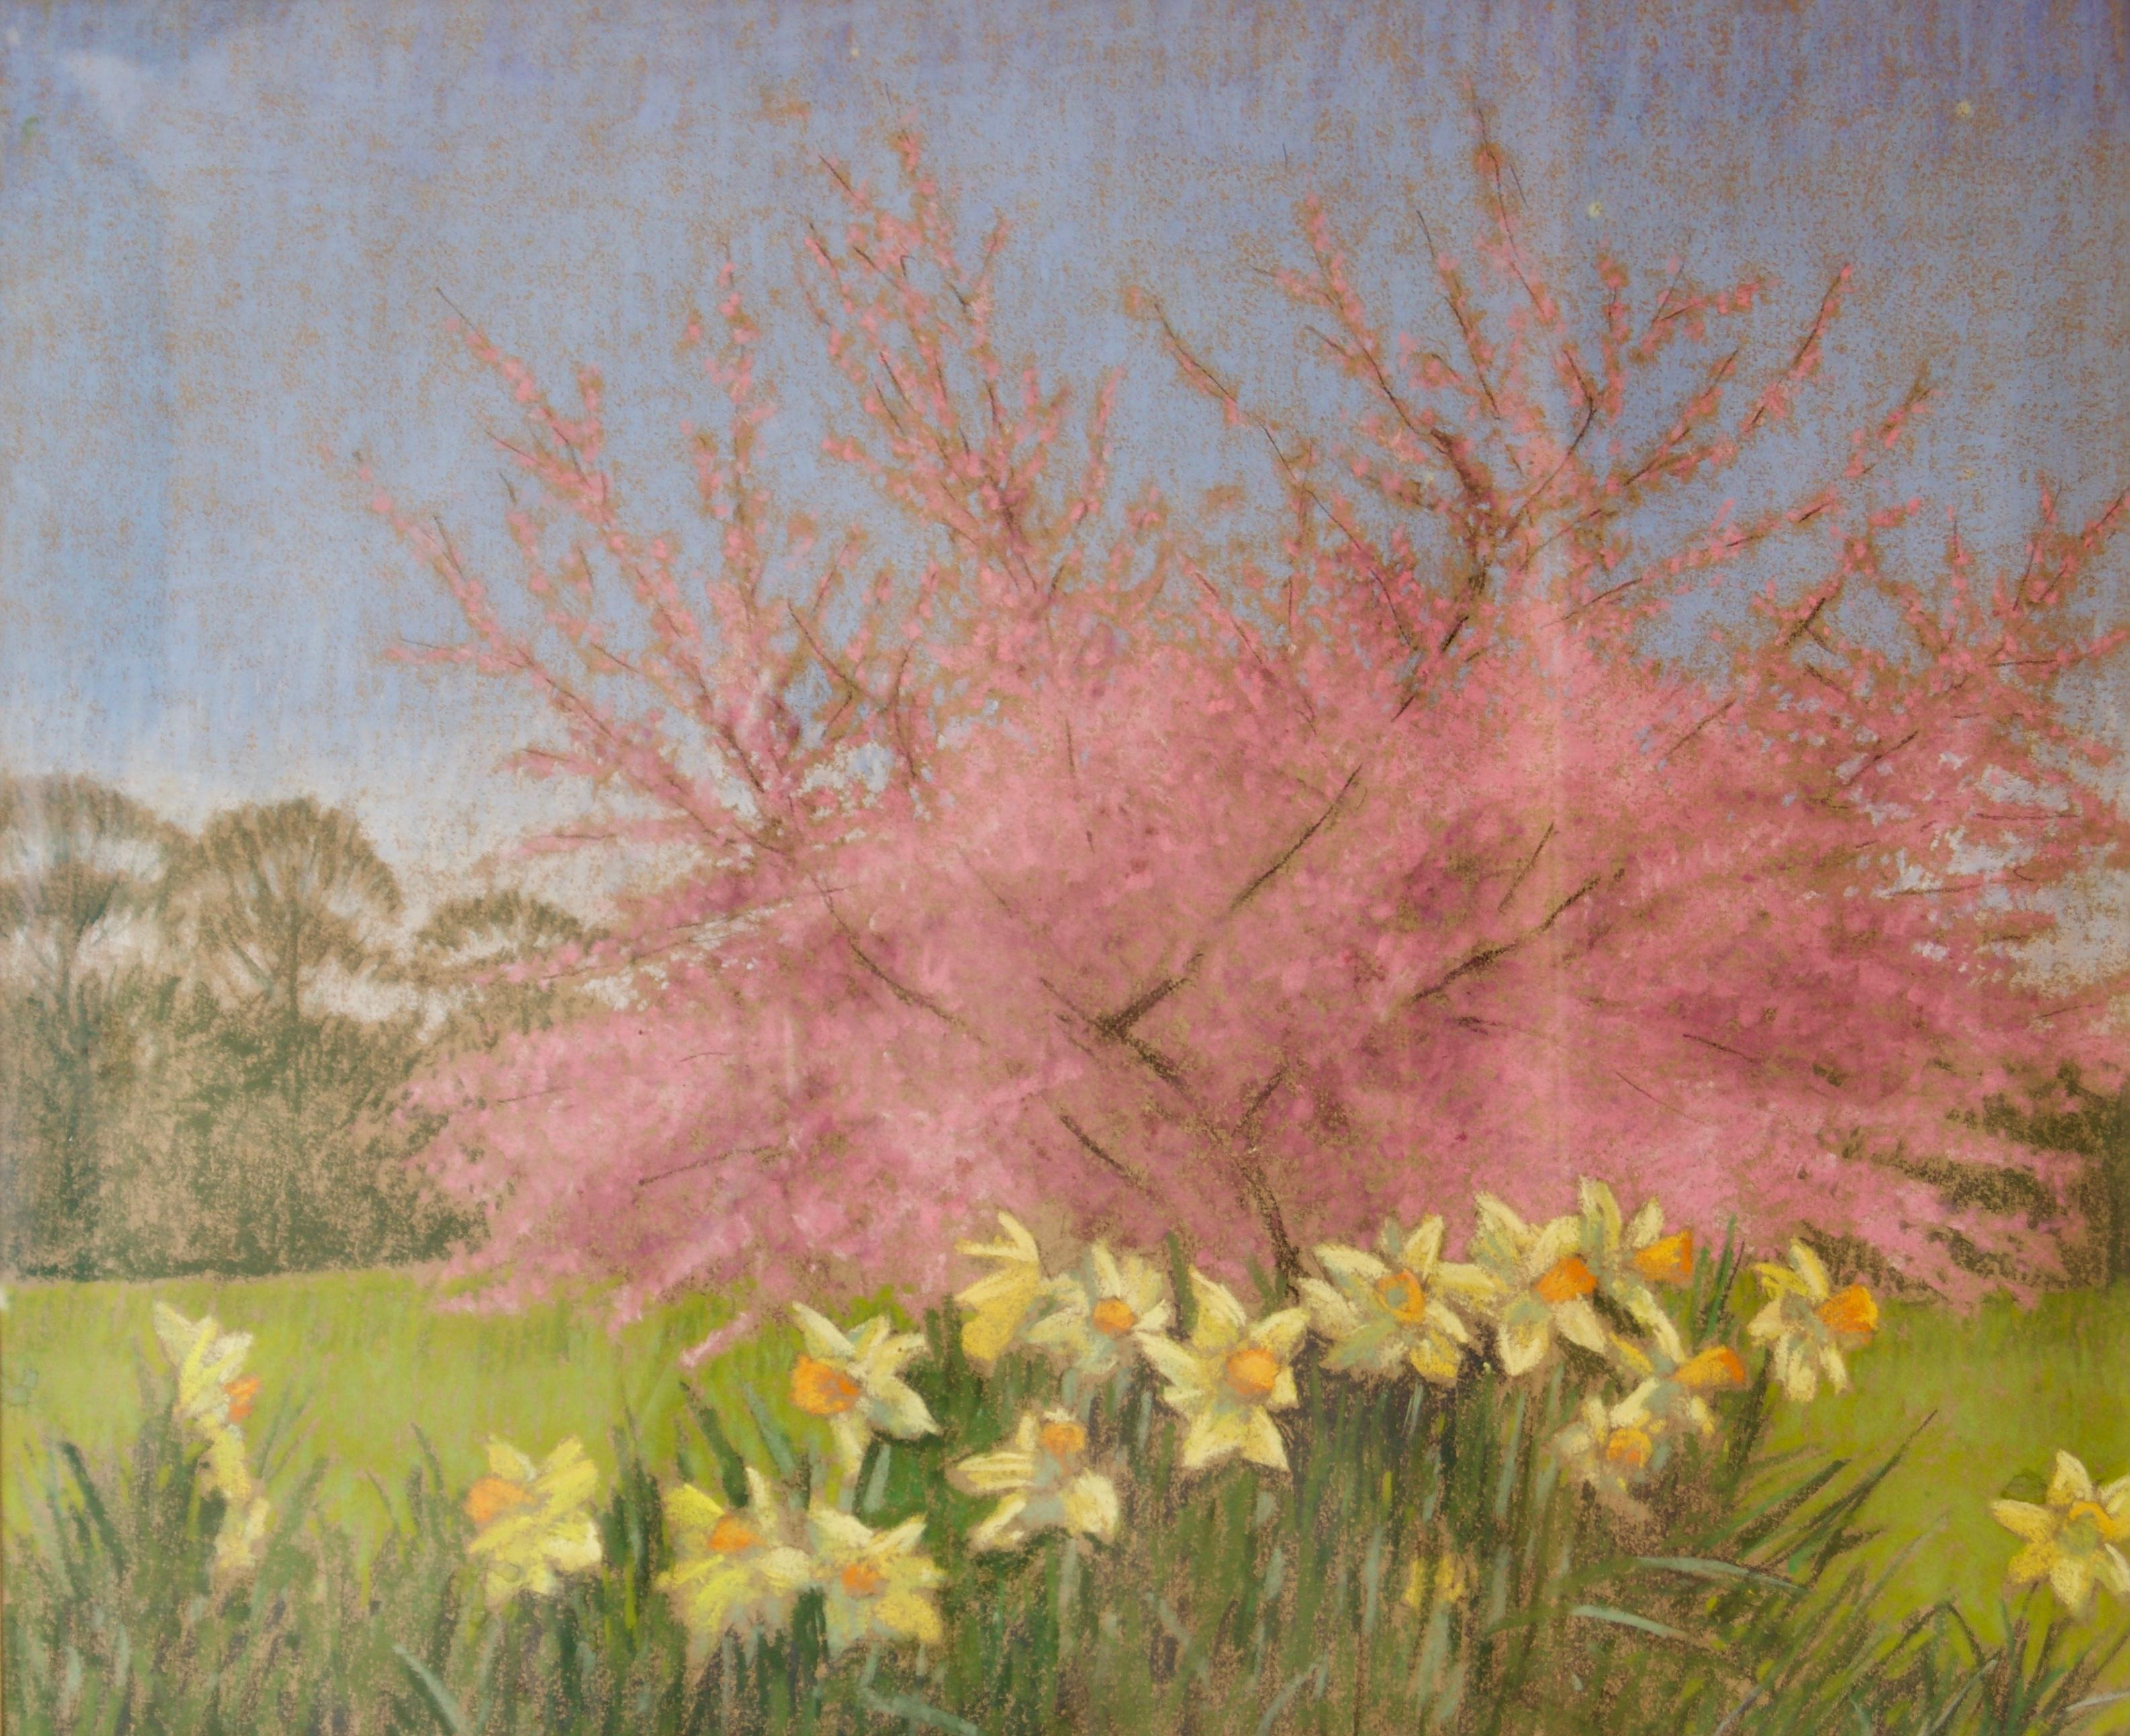 Apple Blossom Tree and Dandelions - Mid 20th Century Impressionist Landscape Oil